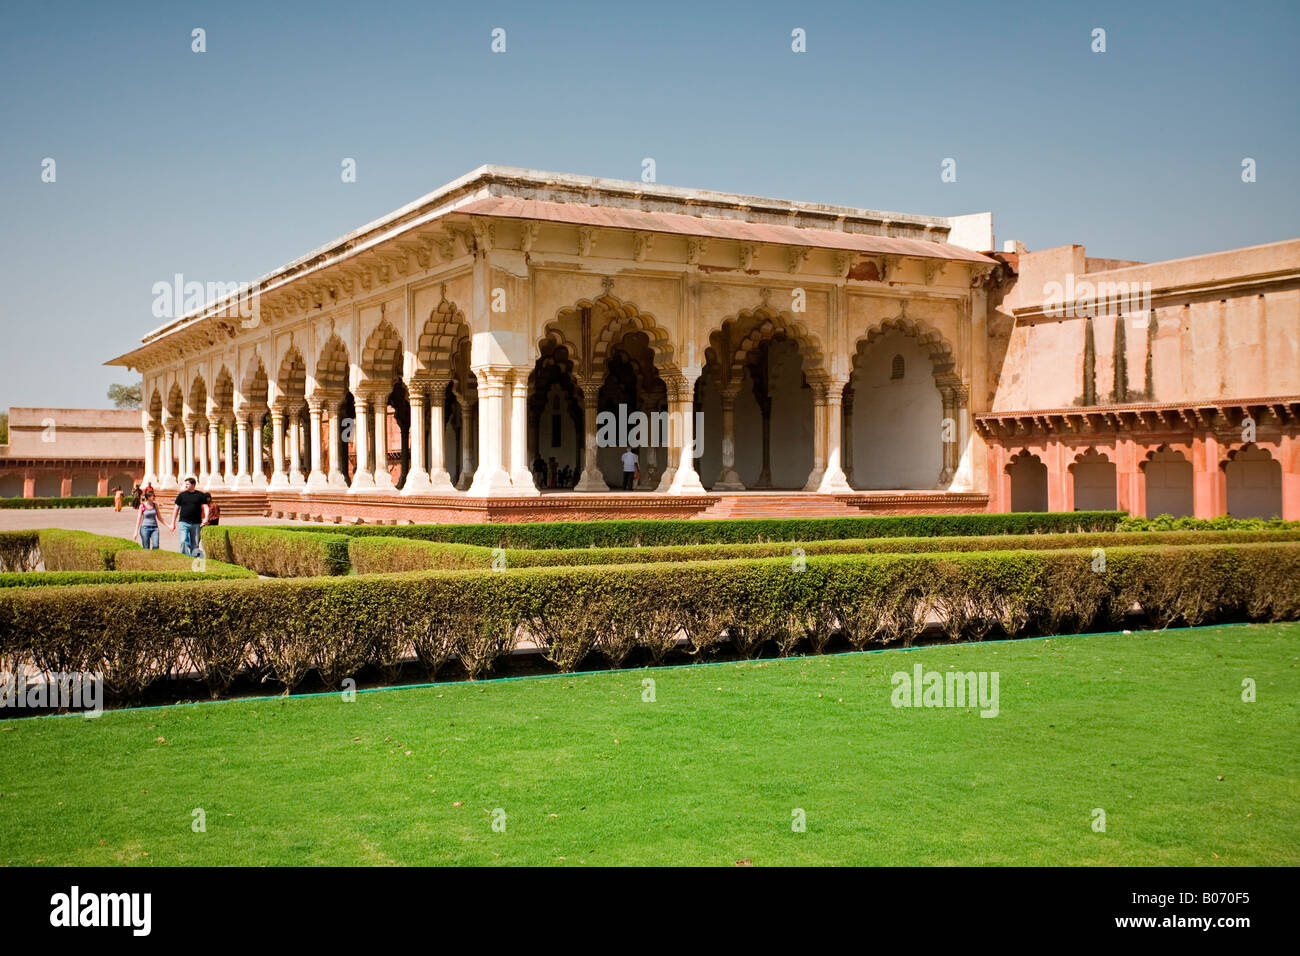 Red fort agra diwan khas stockfotos red fort agra diwan for Diwan i khas agra fort